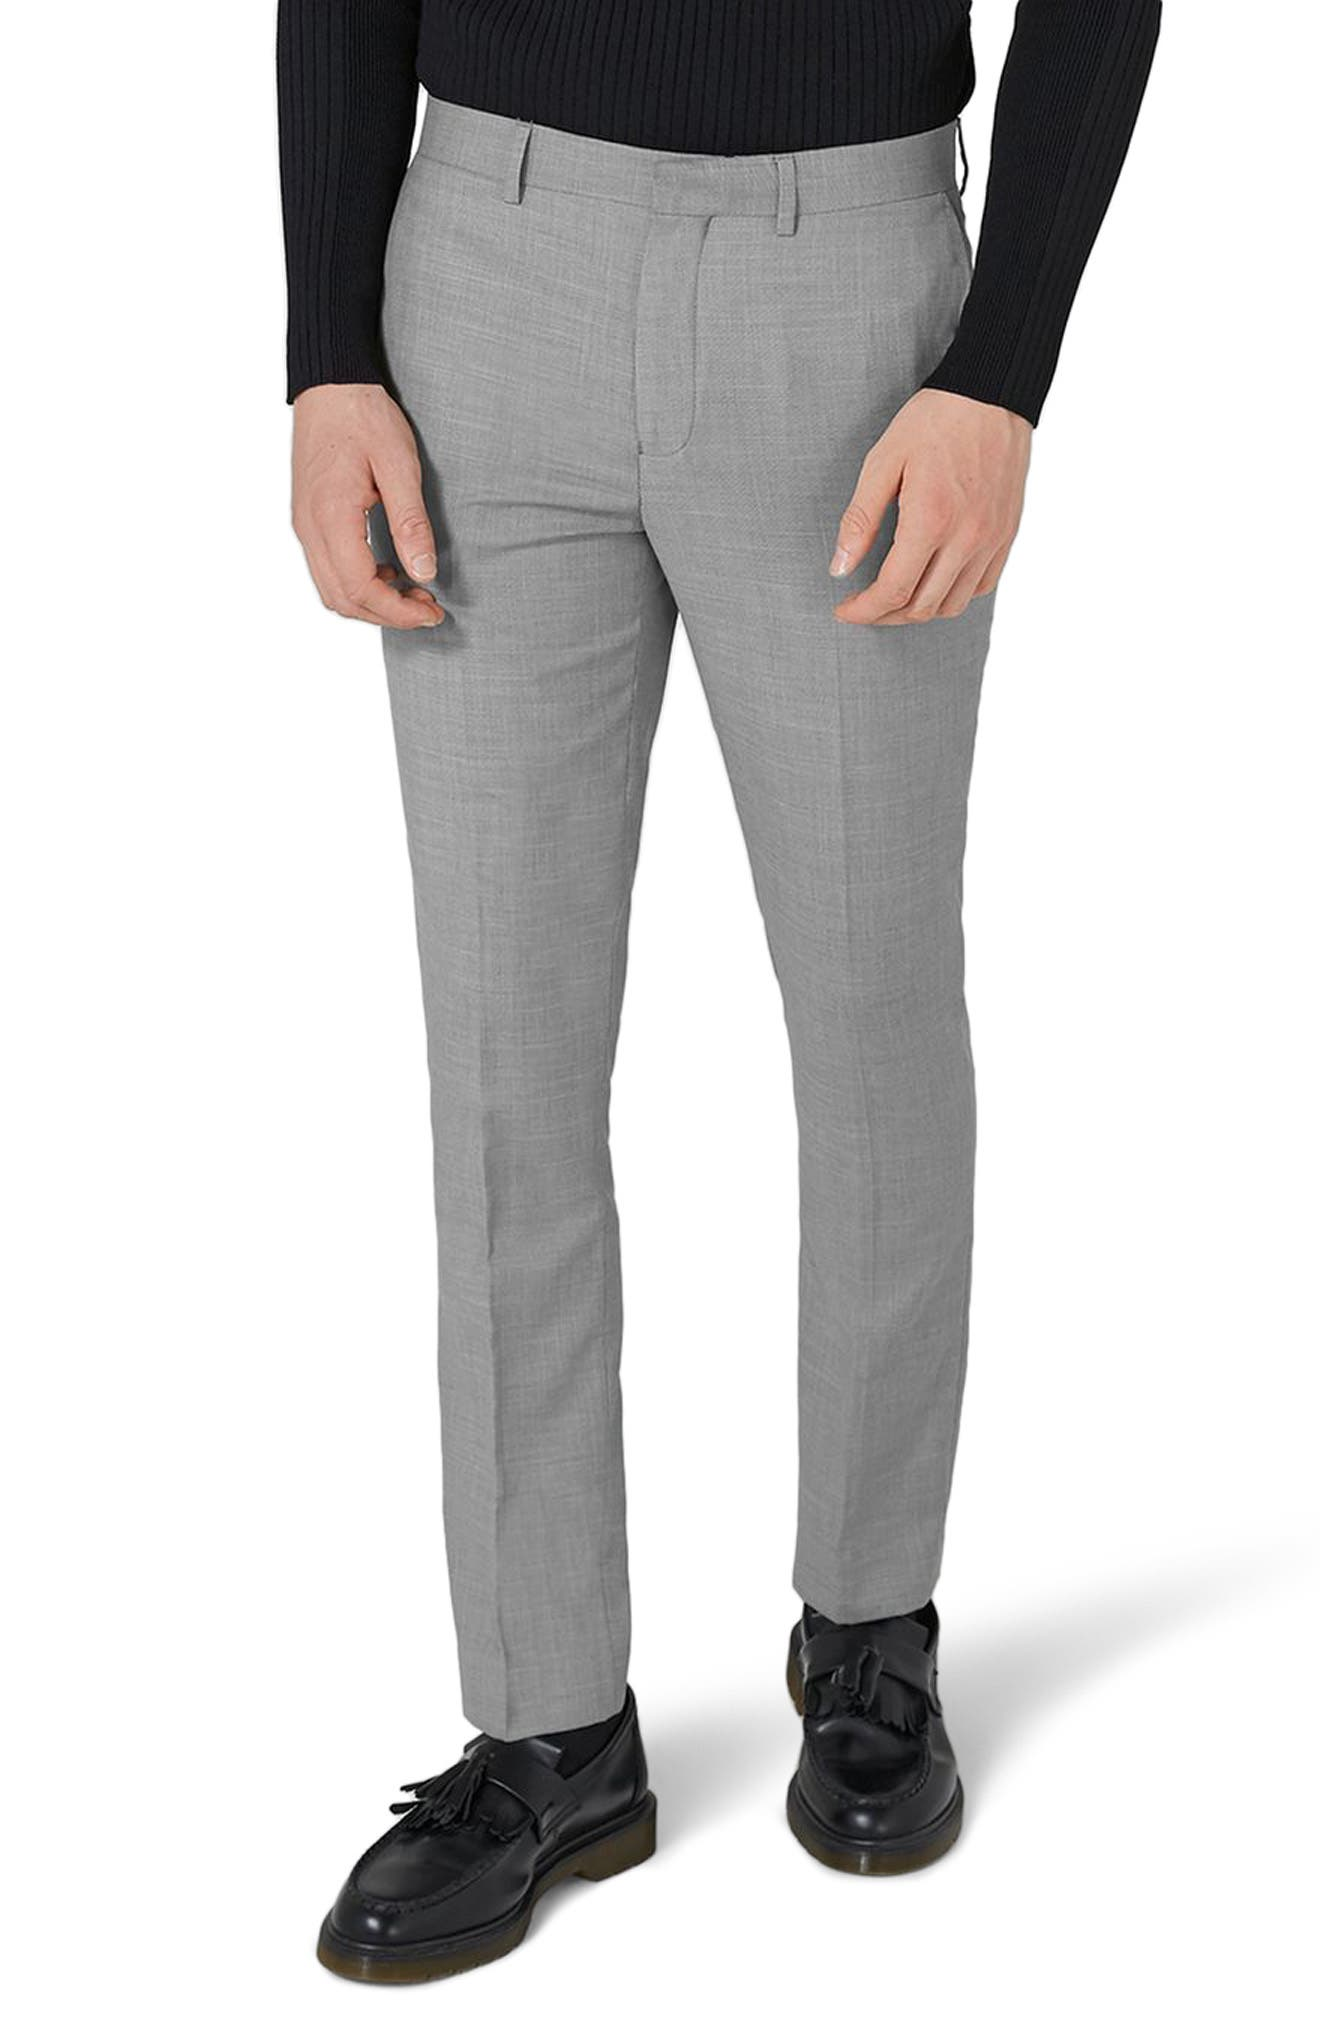 Como Skinny Fit Grey Suit Pants,                             Main thumbnail 1, color,                             GREY